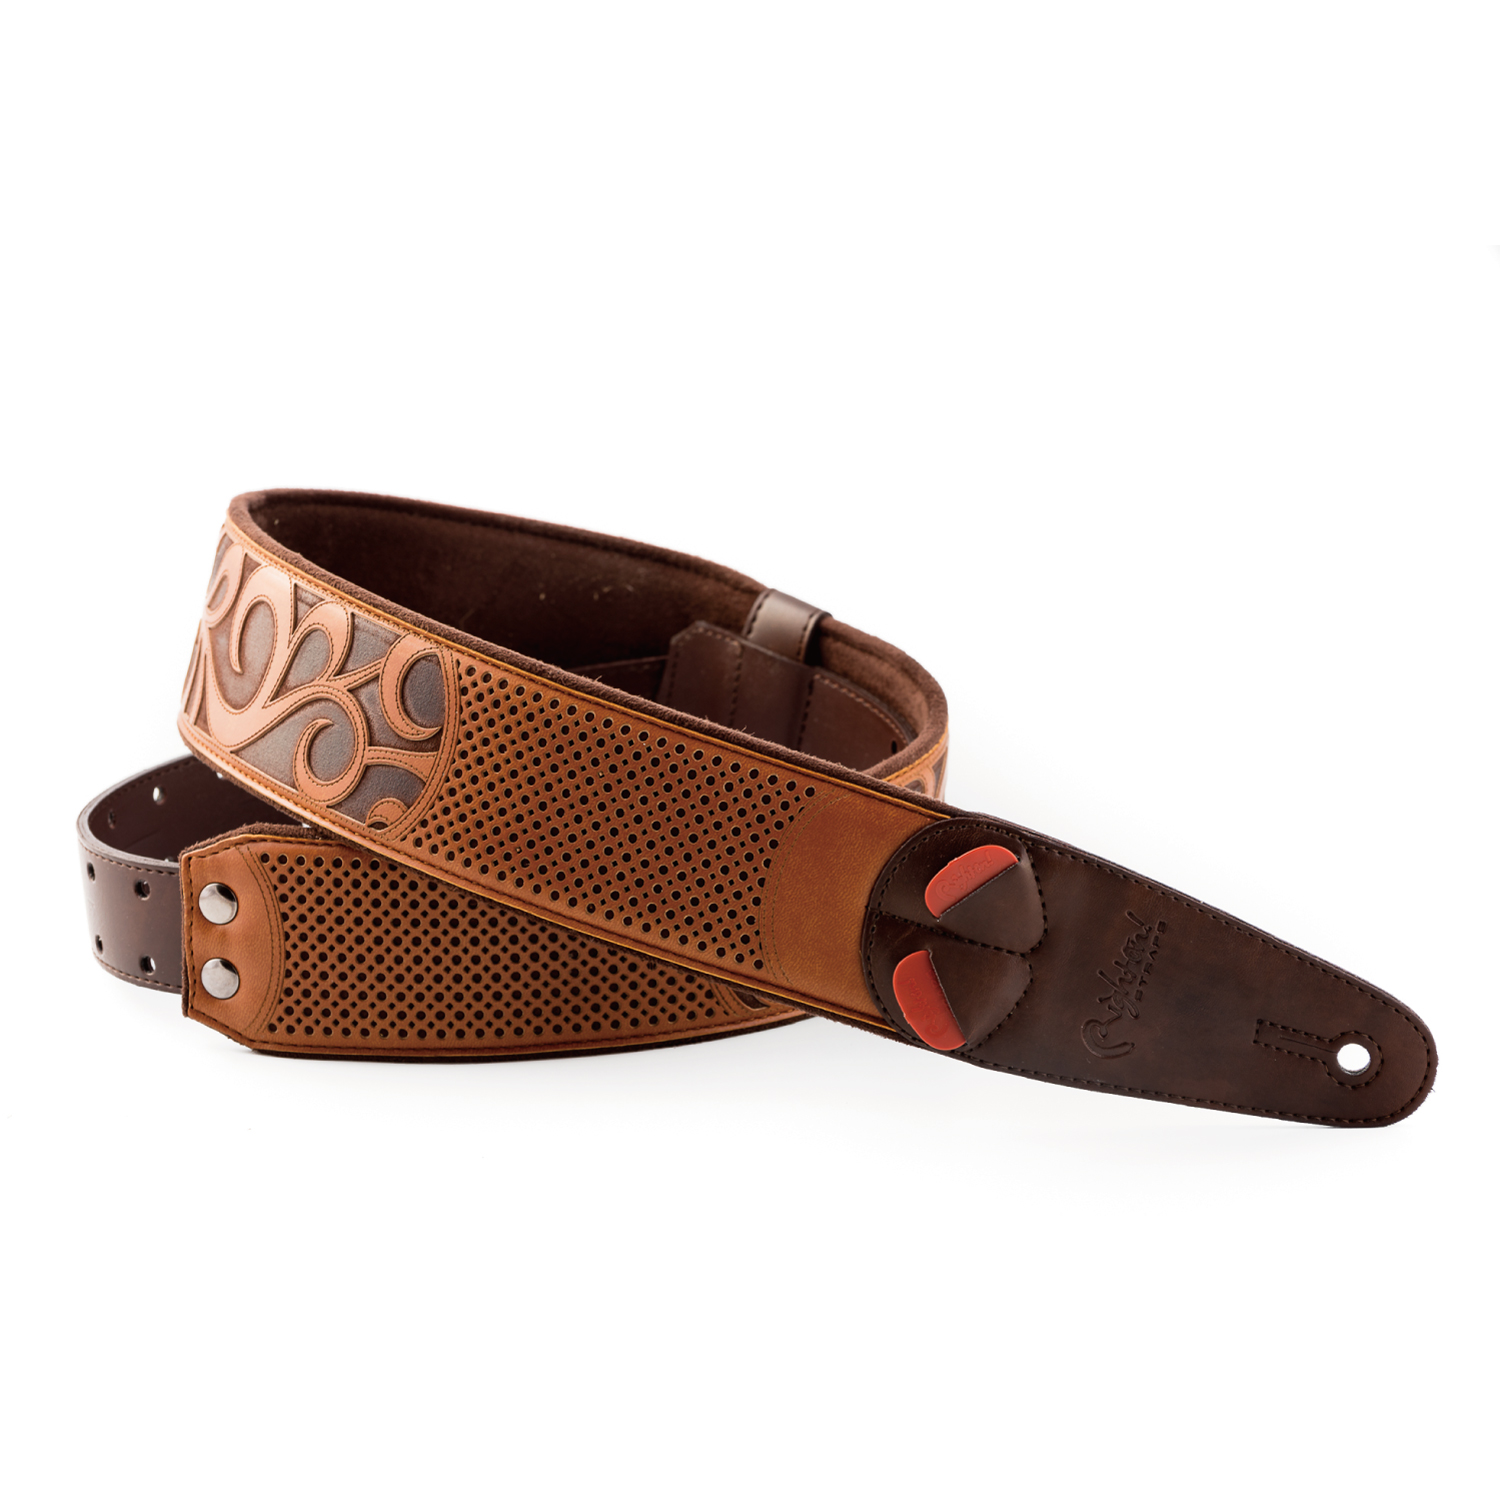 MOJO-NASHVILLE-WOODY-RIGHTONSTRAPS-(3)1500